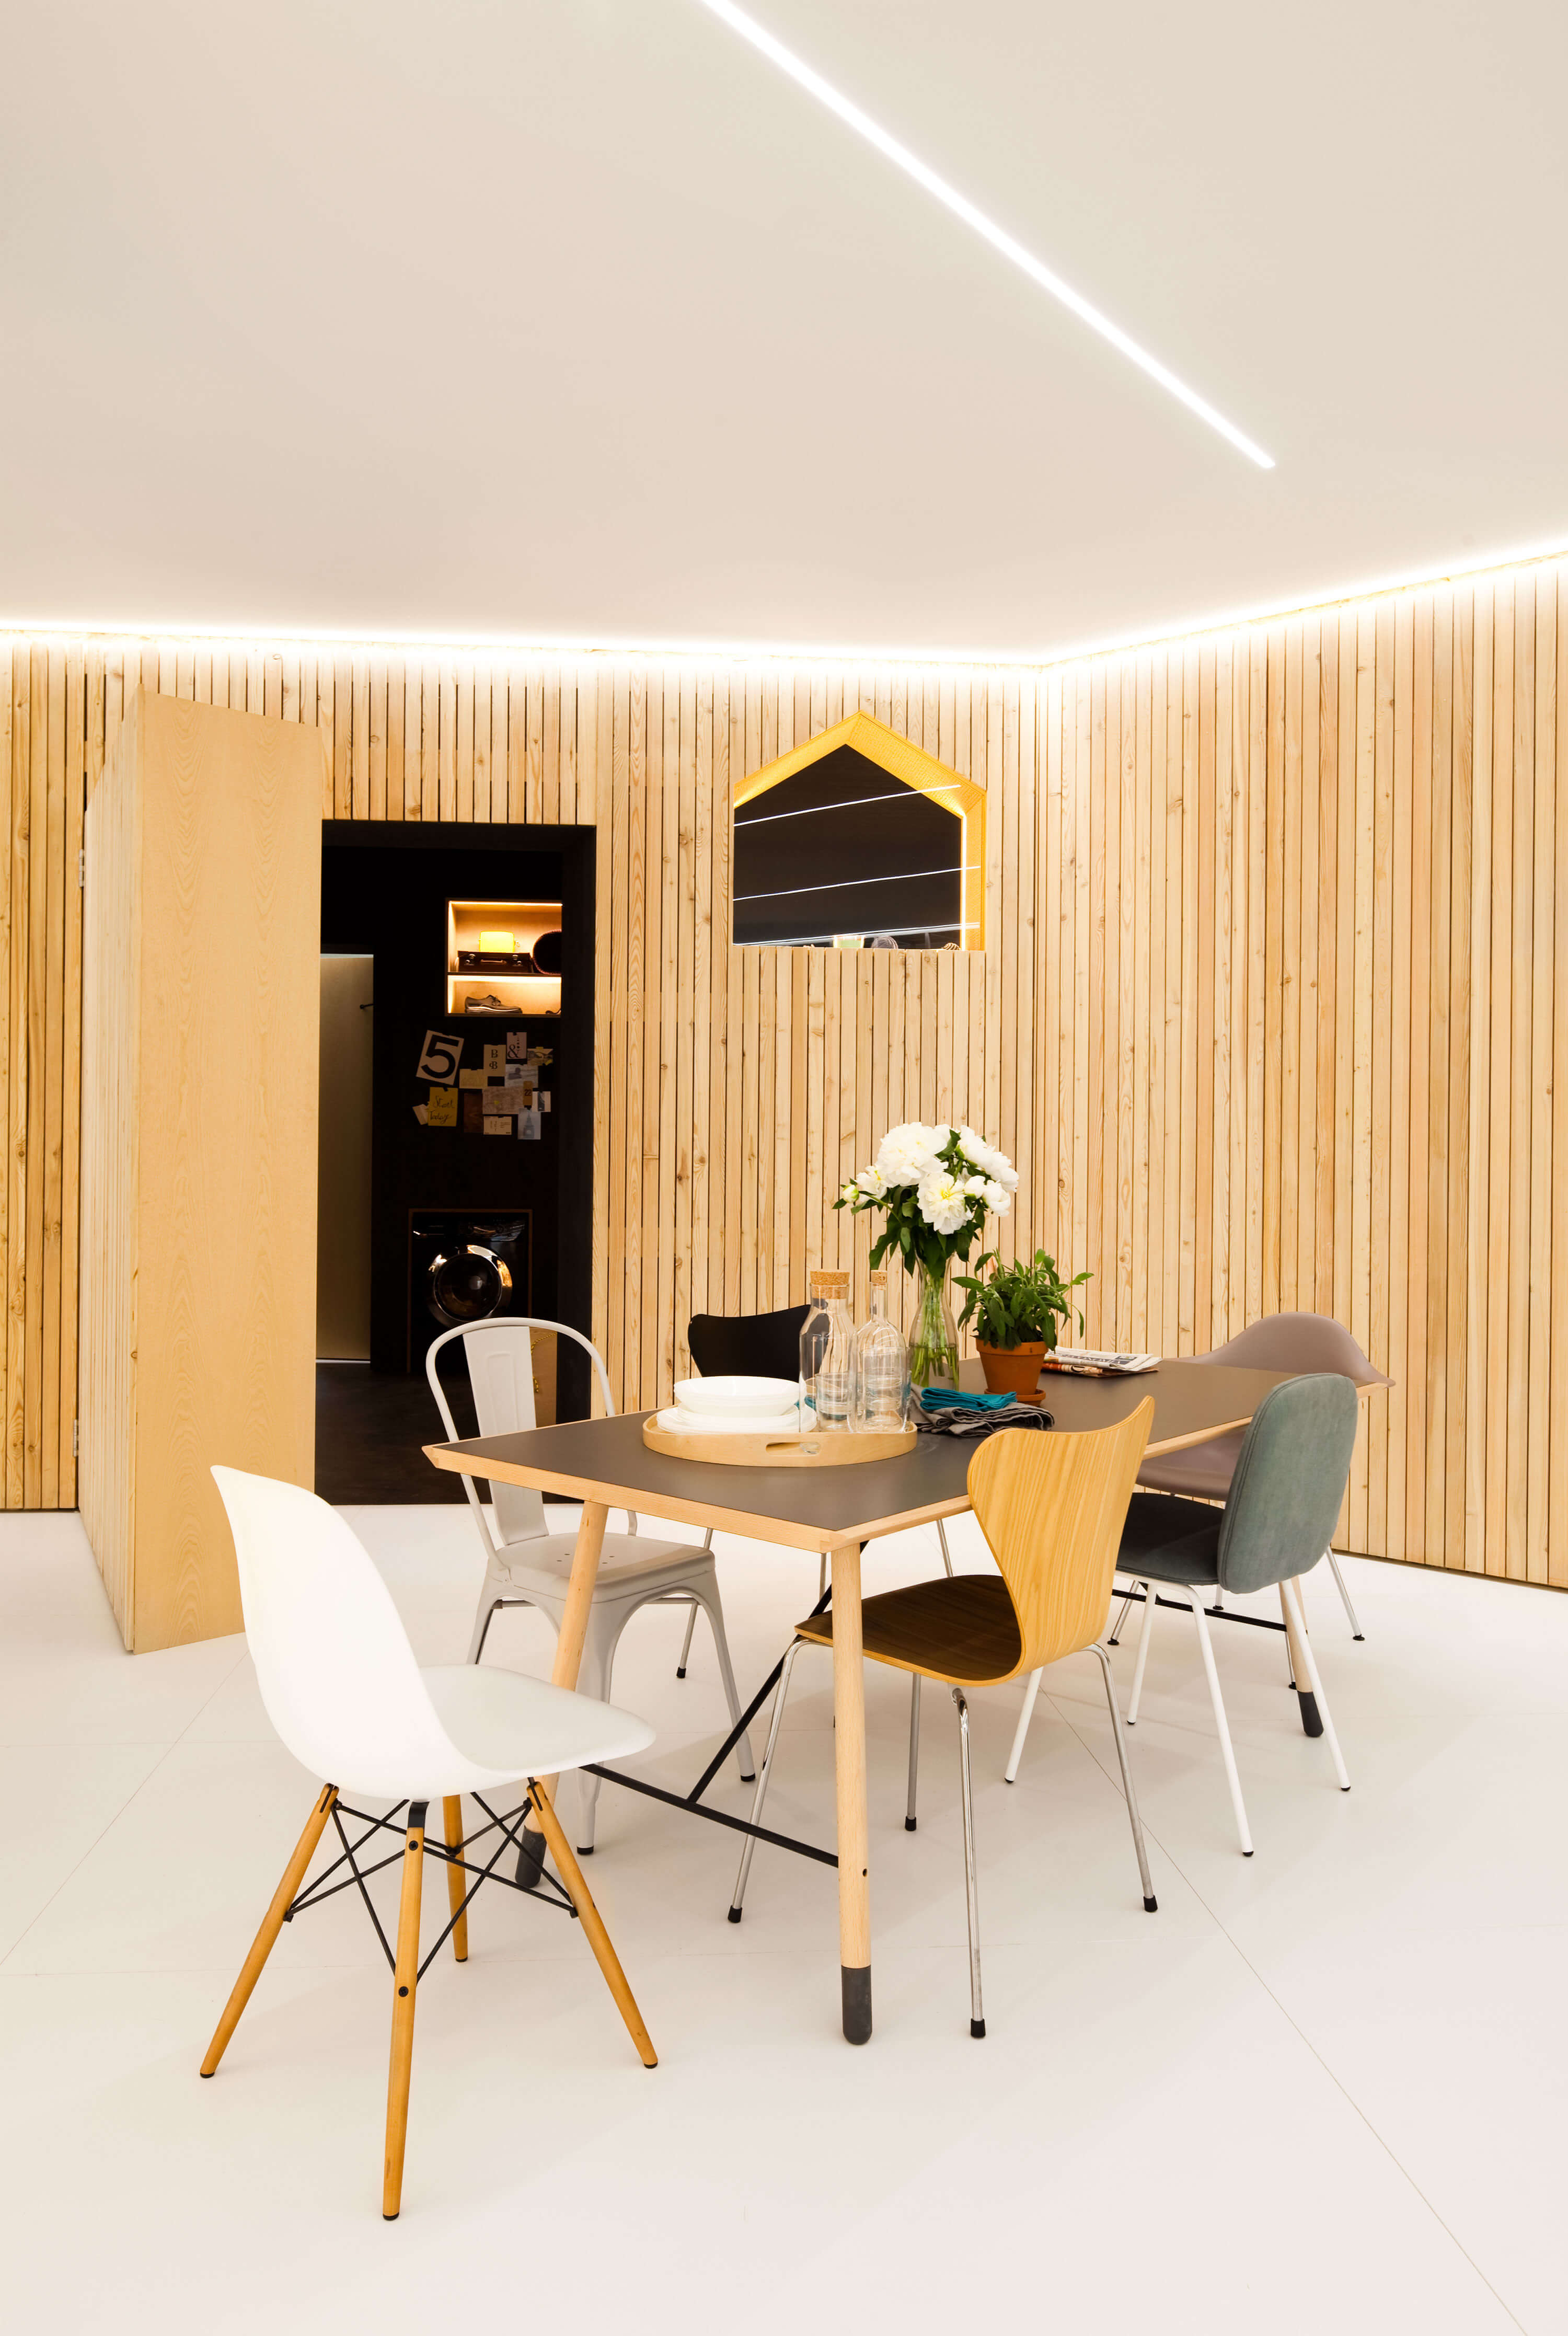 The wooden walls of the Mini Living: Do Disturb can be opened or closed